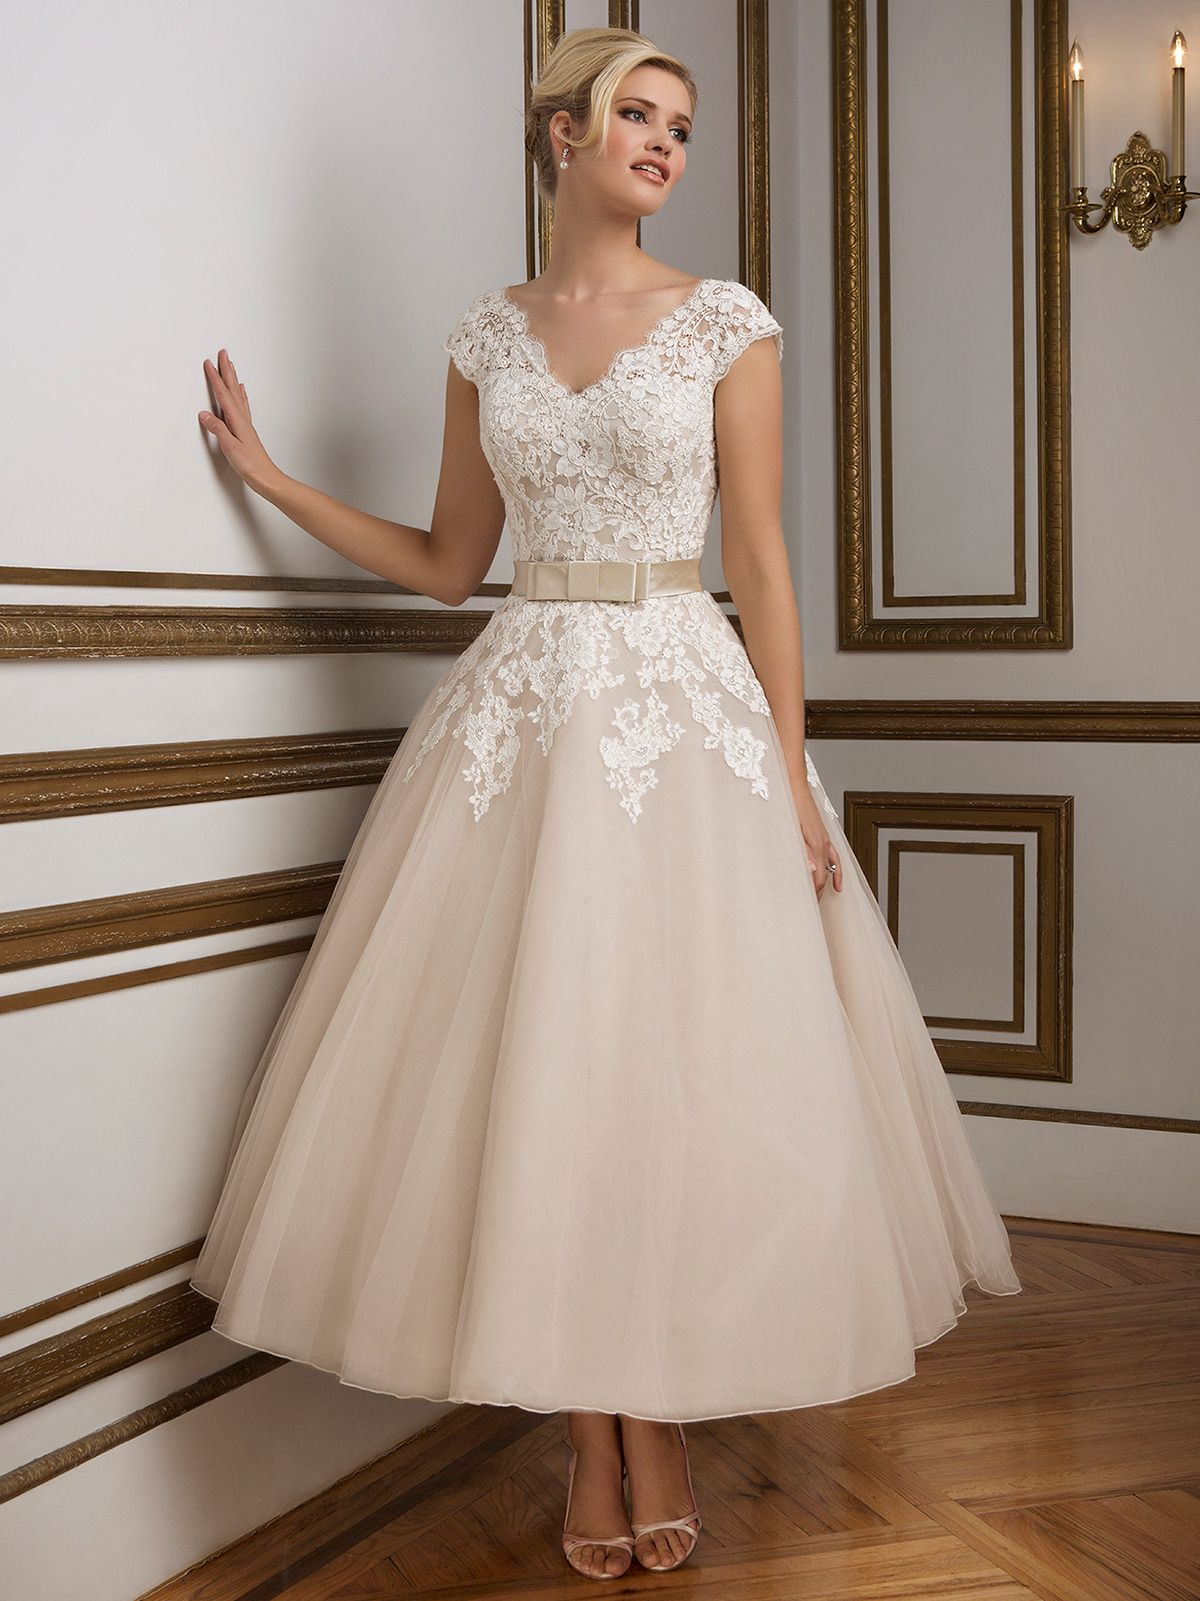 99+ Wedding Dresses for 2nd Marriages - Dress for Country Wedding ...